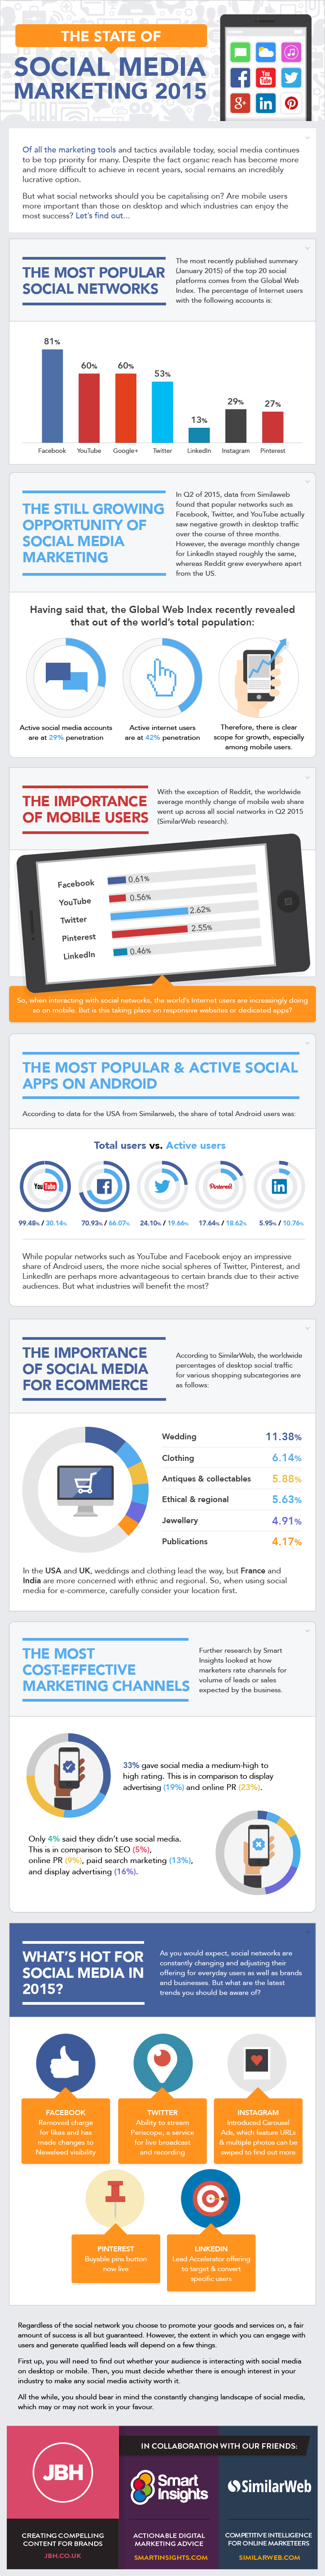 The State of Social Media Marketing 2015